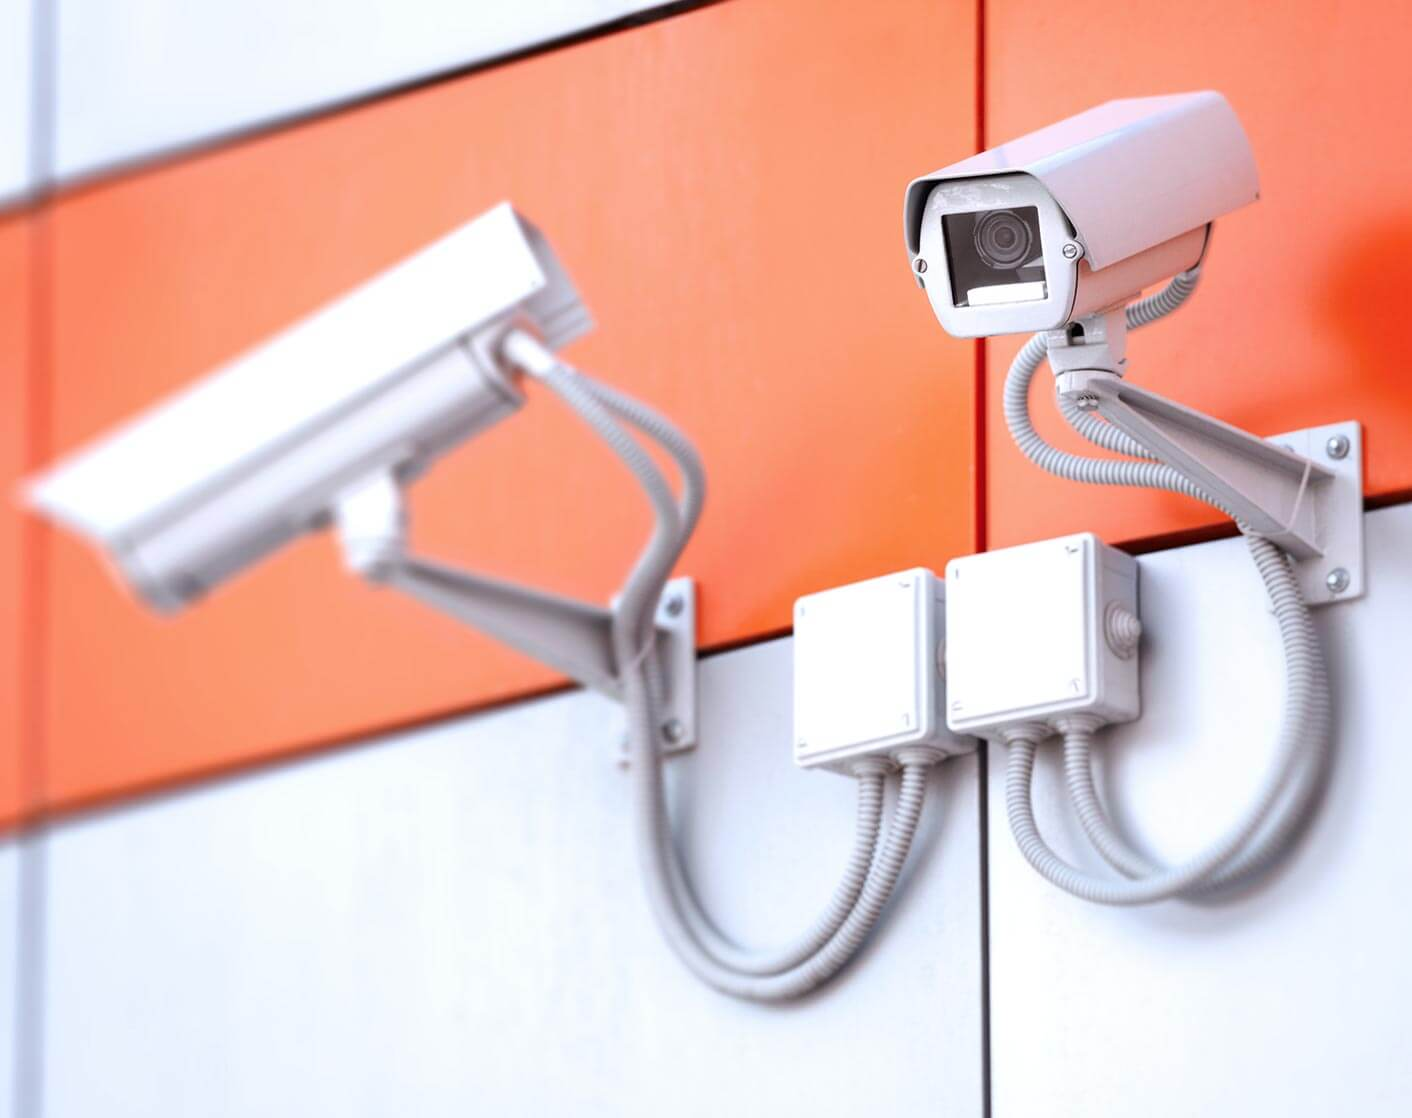 Two security cameras looking opposite directions on a white wall with an orange stripe